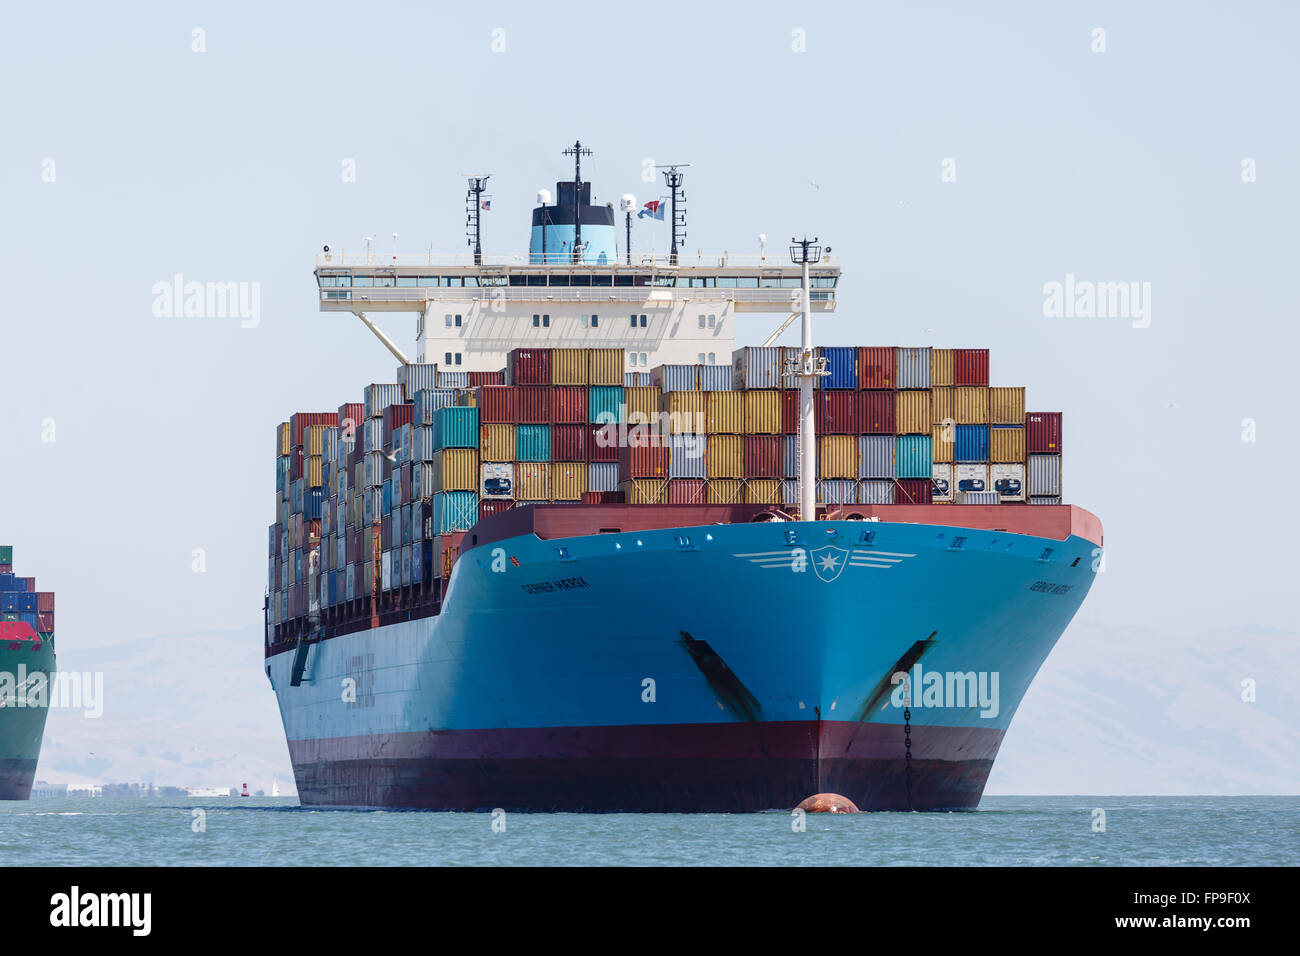 view of entire front of container cargo ship and moored in